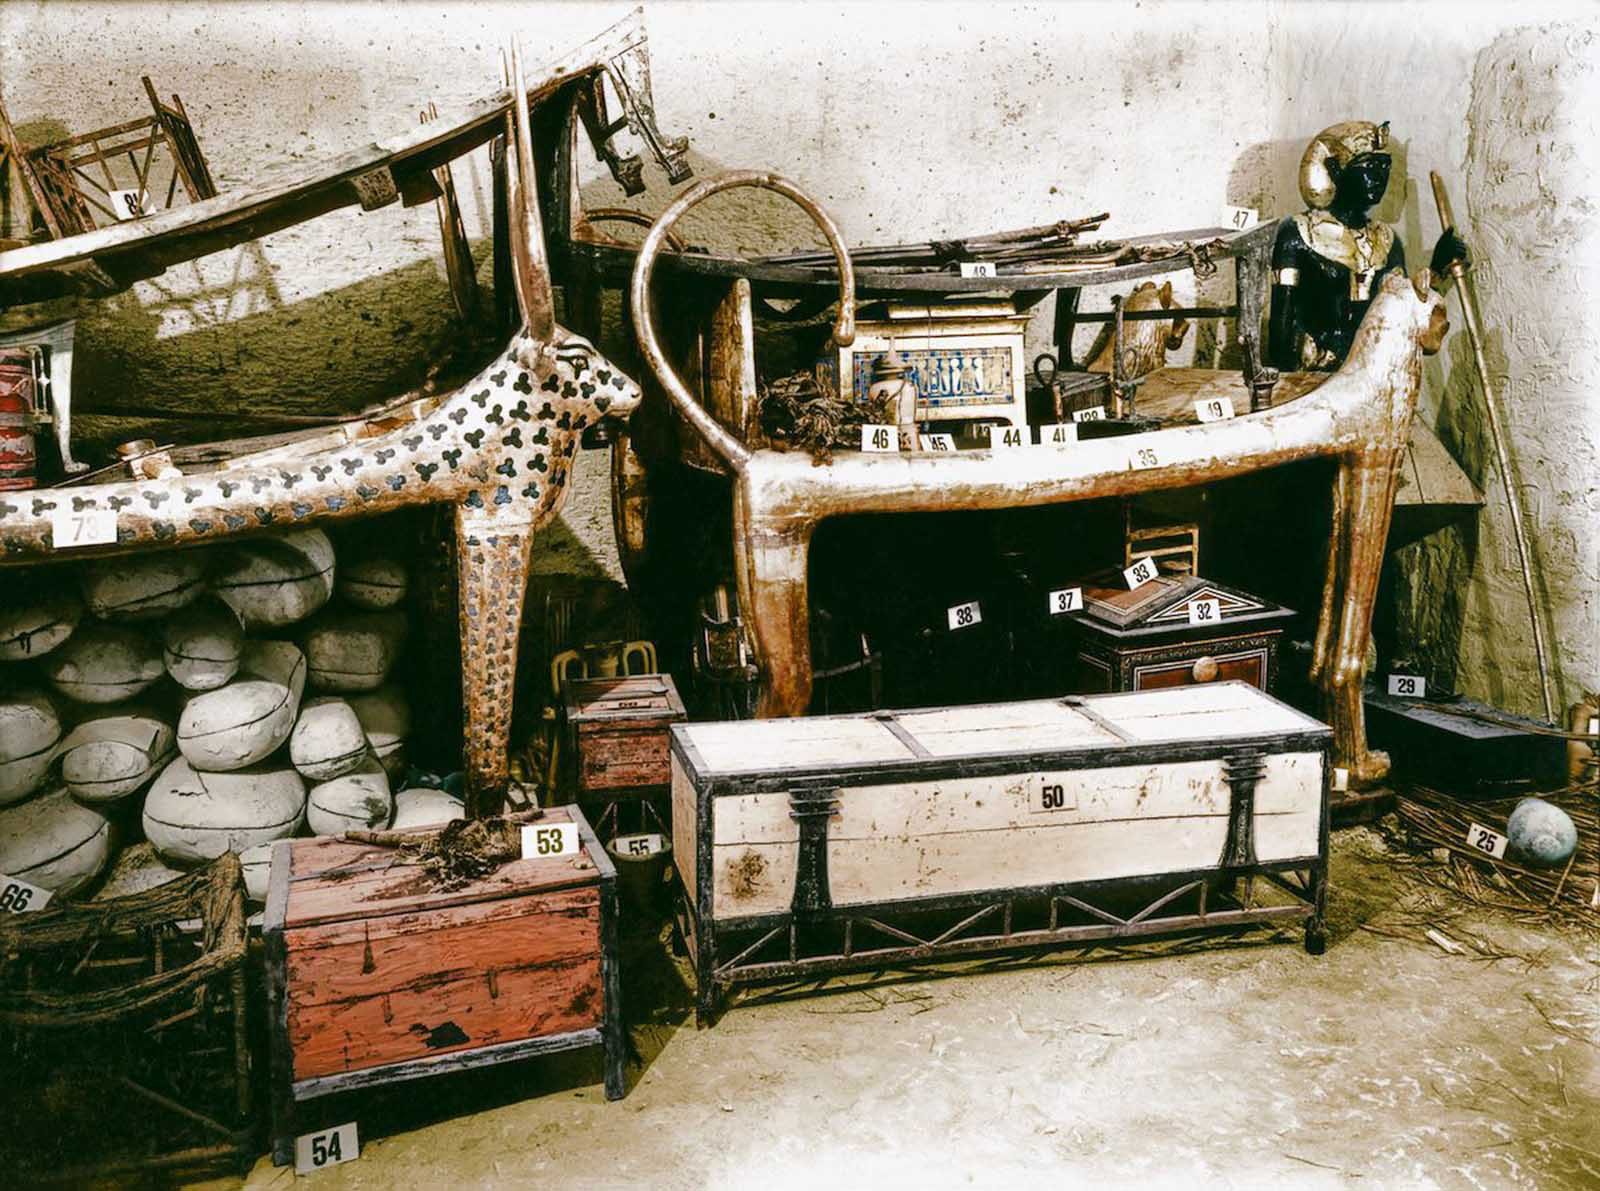 A gilded lion bed and inlaid clothes chest among other objects in the antechamber.